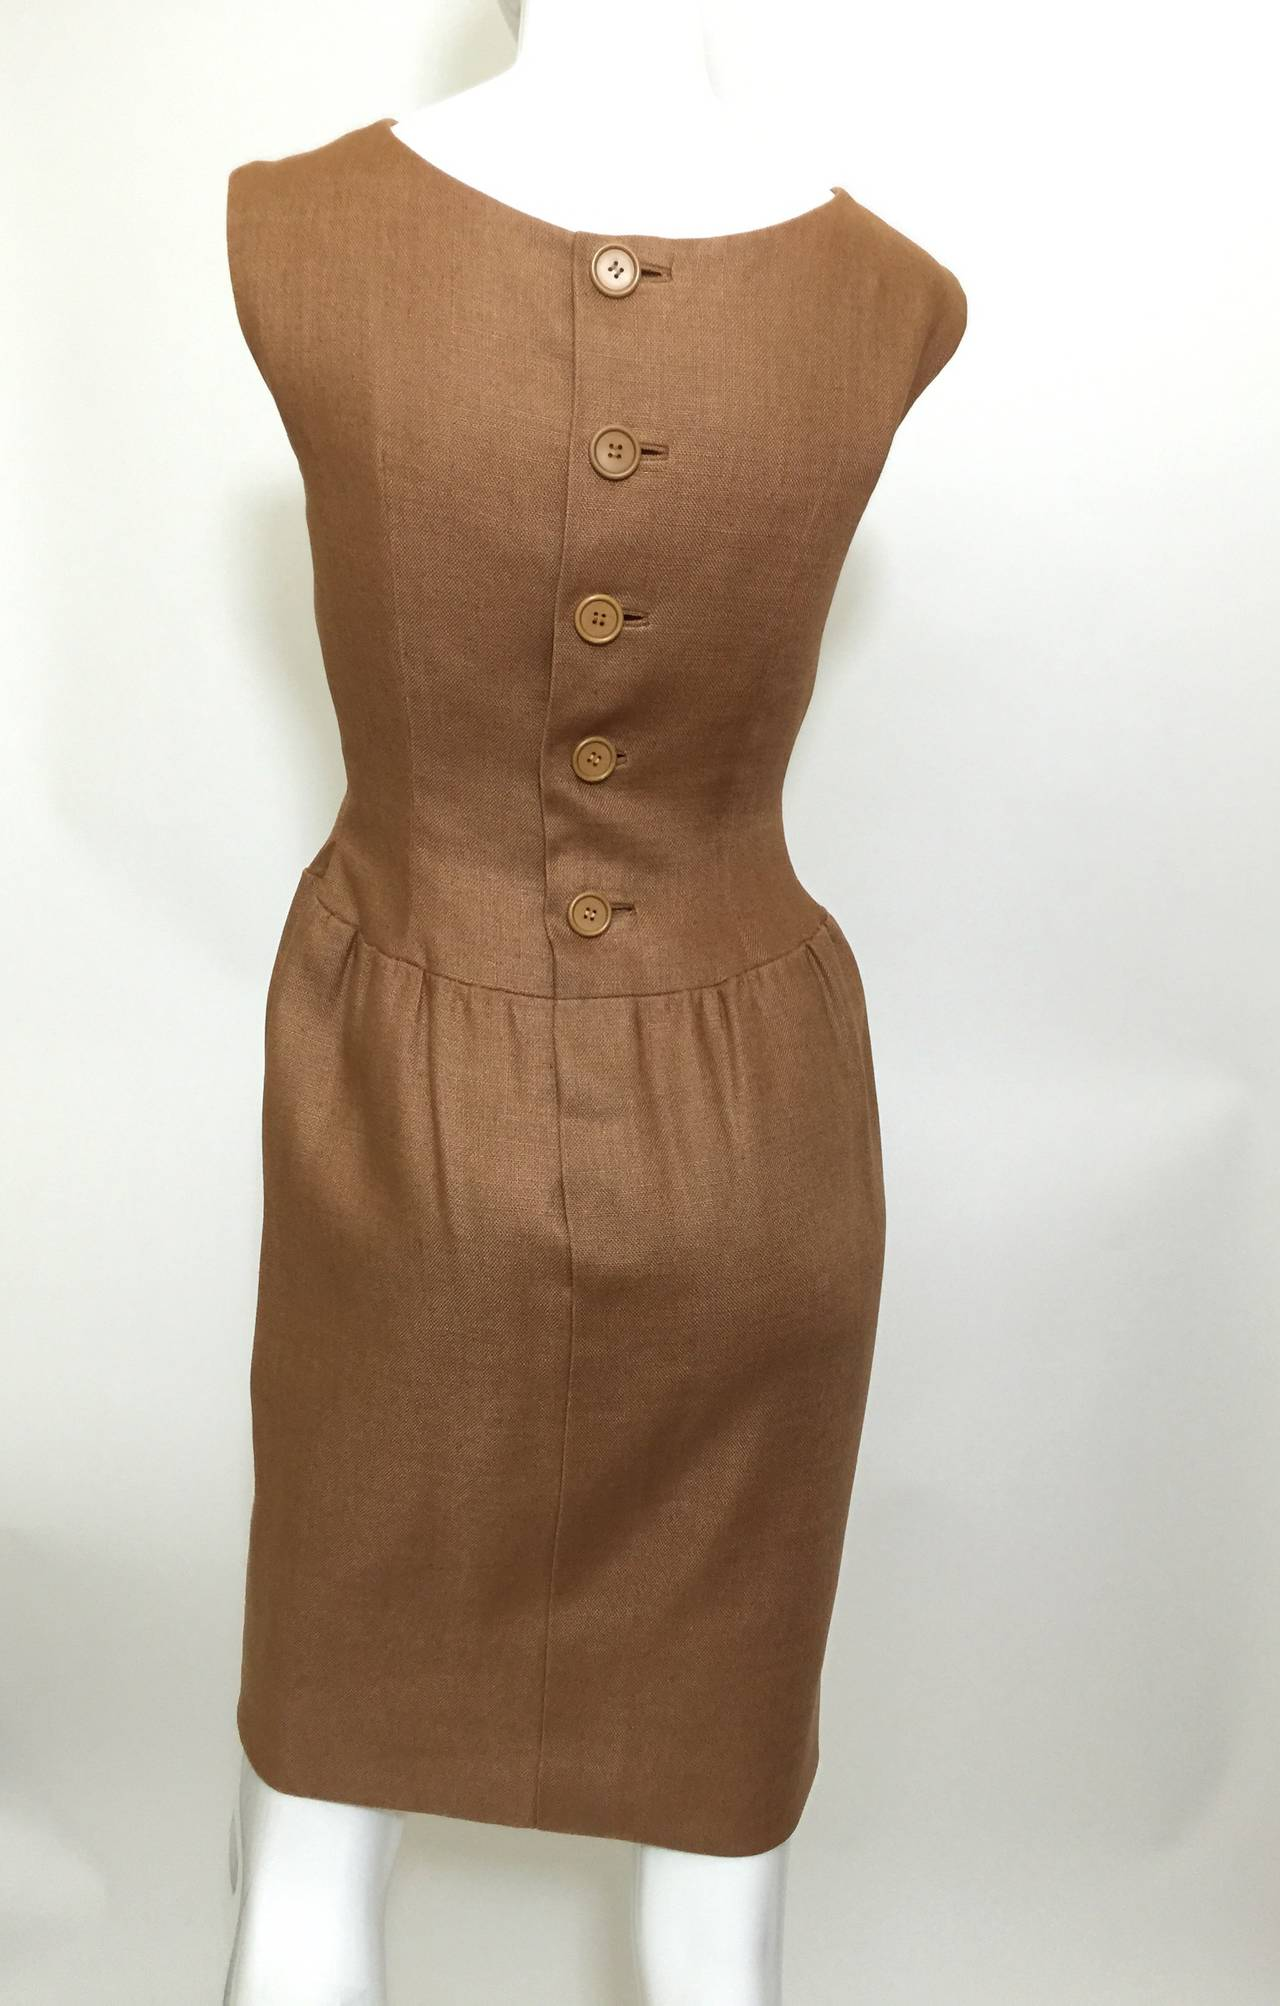 c.1961 Norman Norell Dress as seen on Jacqueline Kennedy  For Sale 2